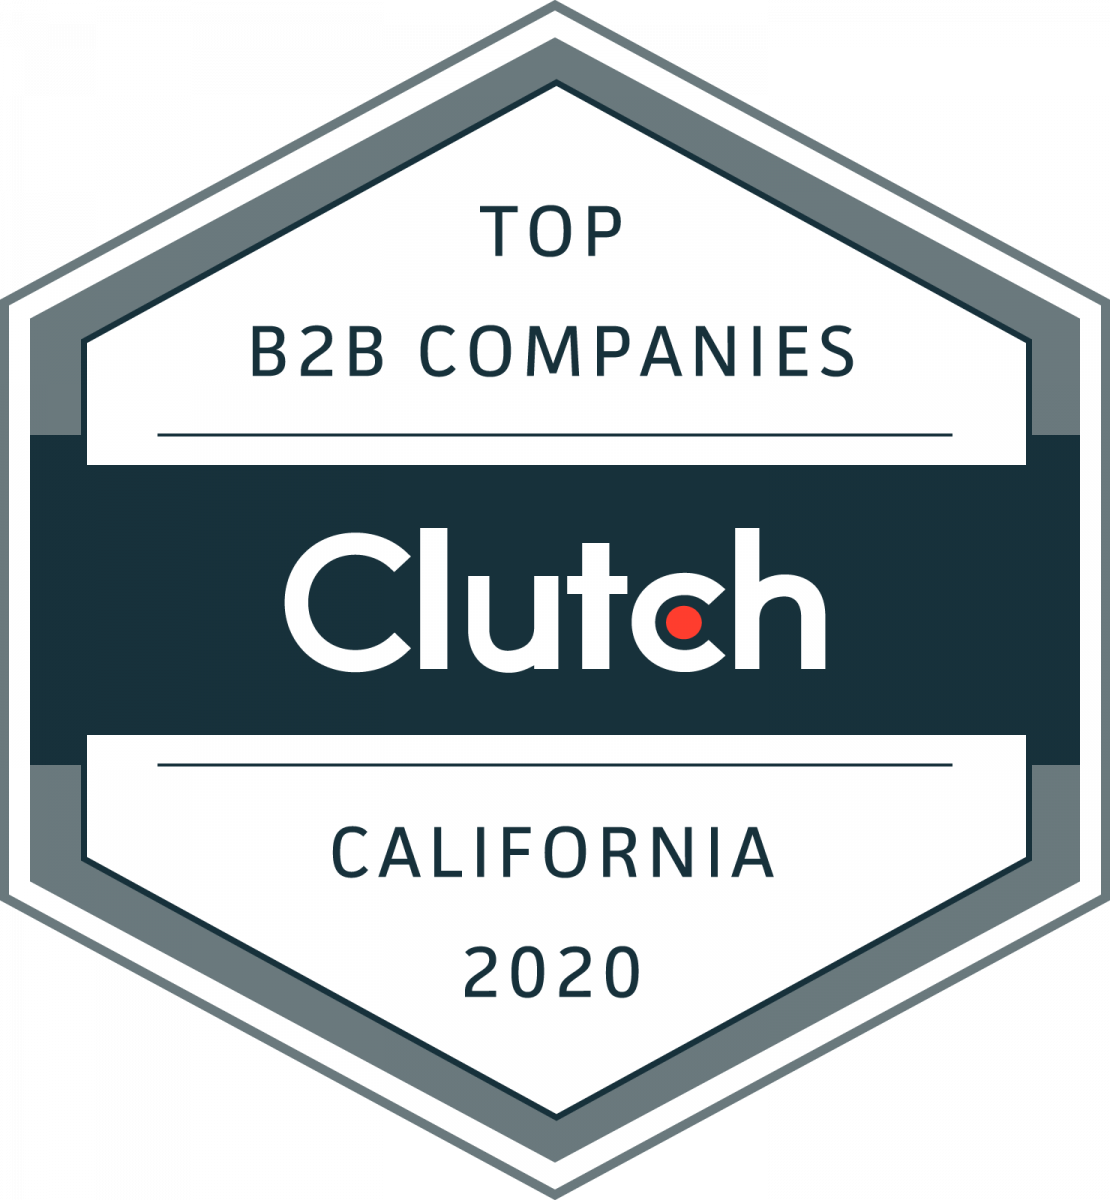 Top California B2B Companies